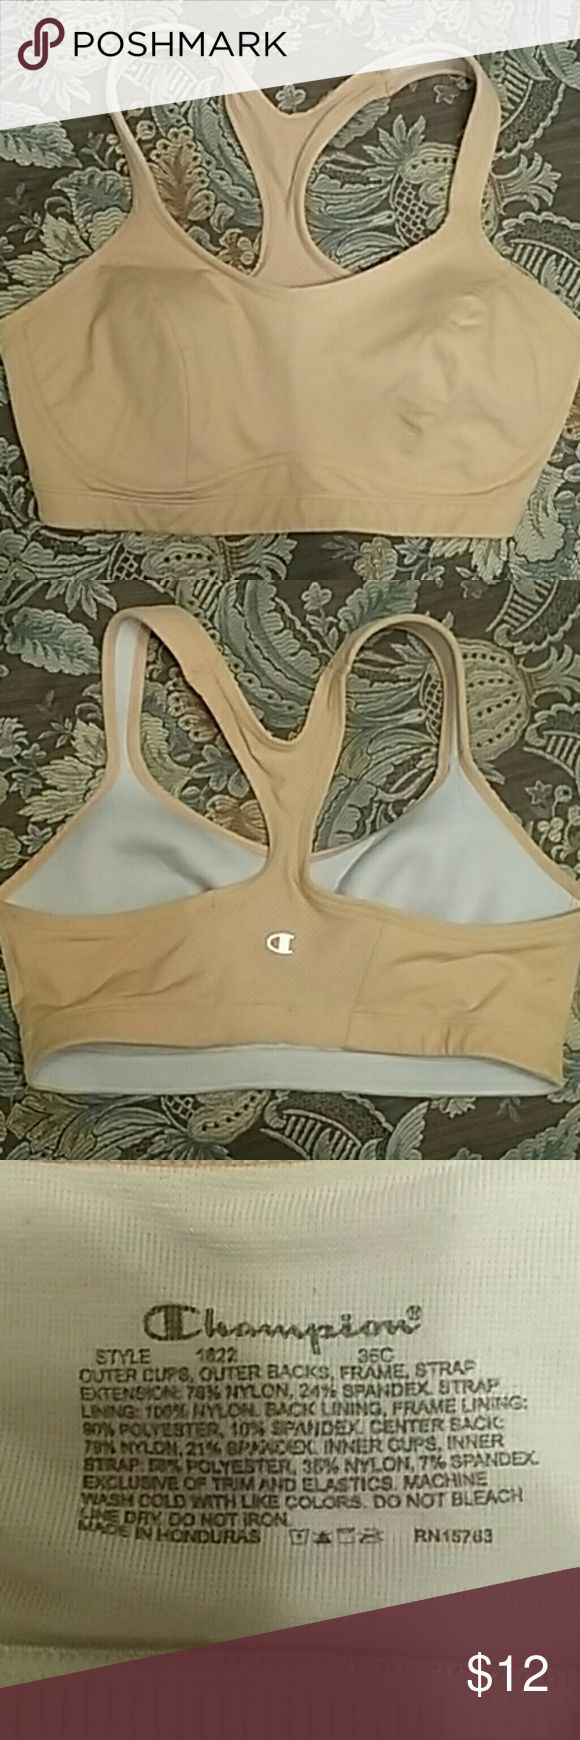 Sports Bra 36C Pastel orange sports bra 36c Champion Intimates & Sleepwear Bras